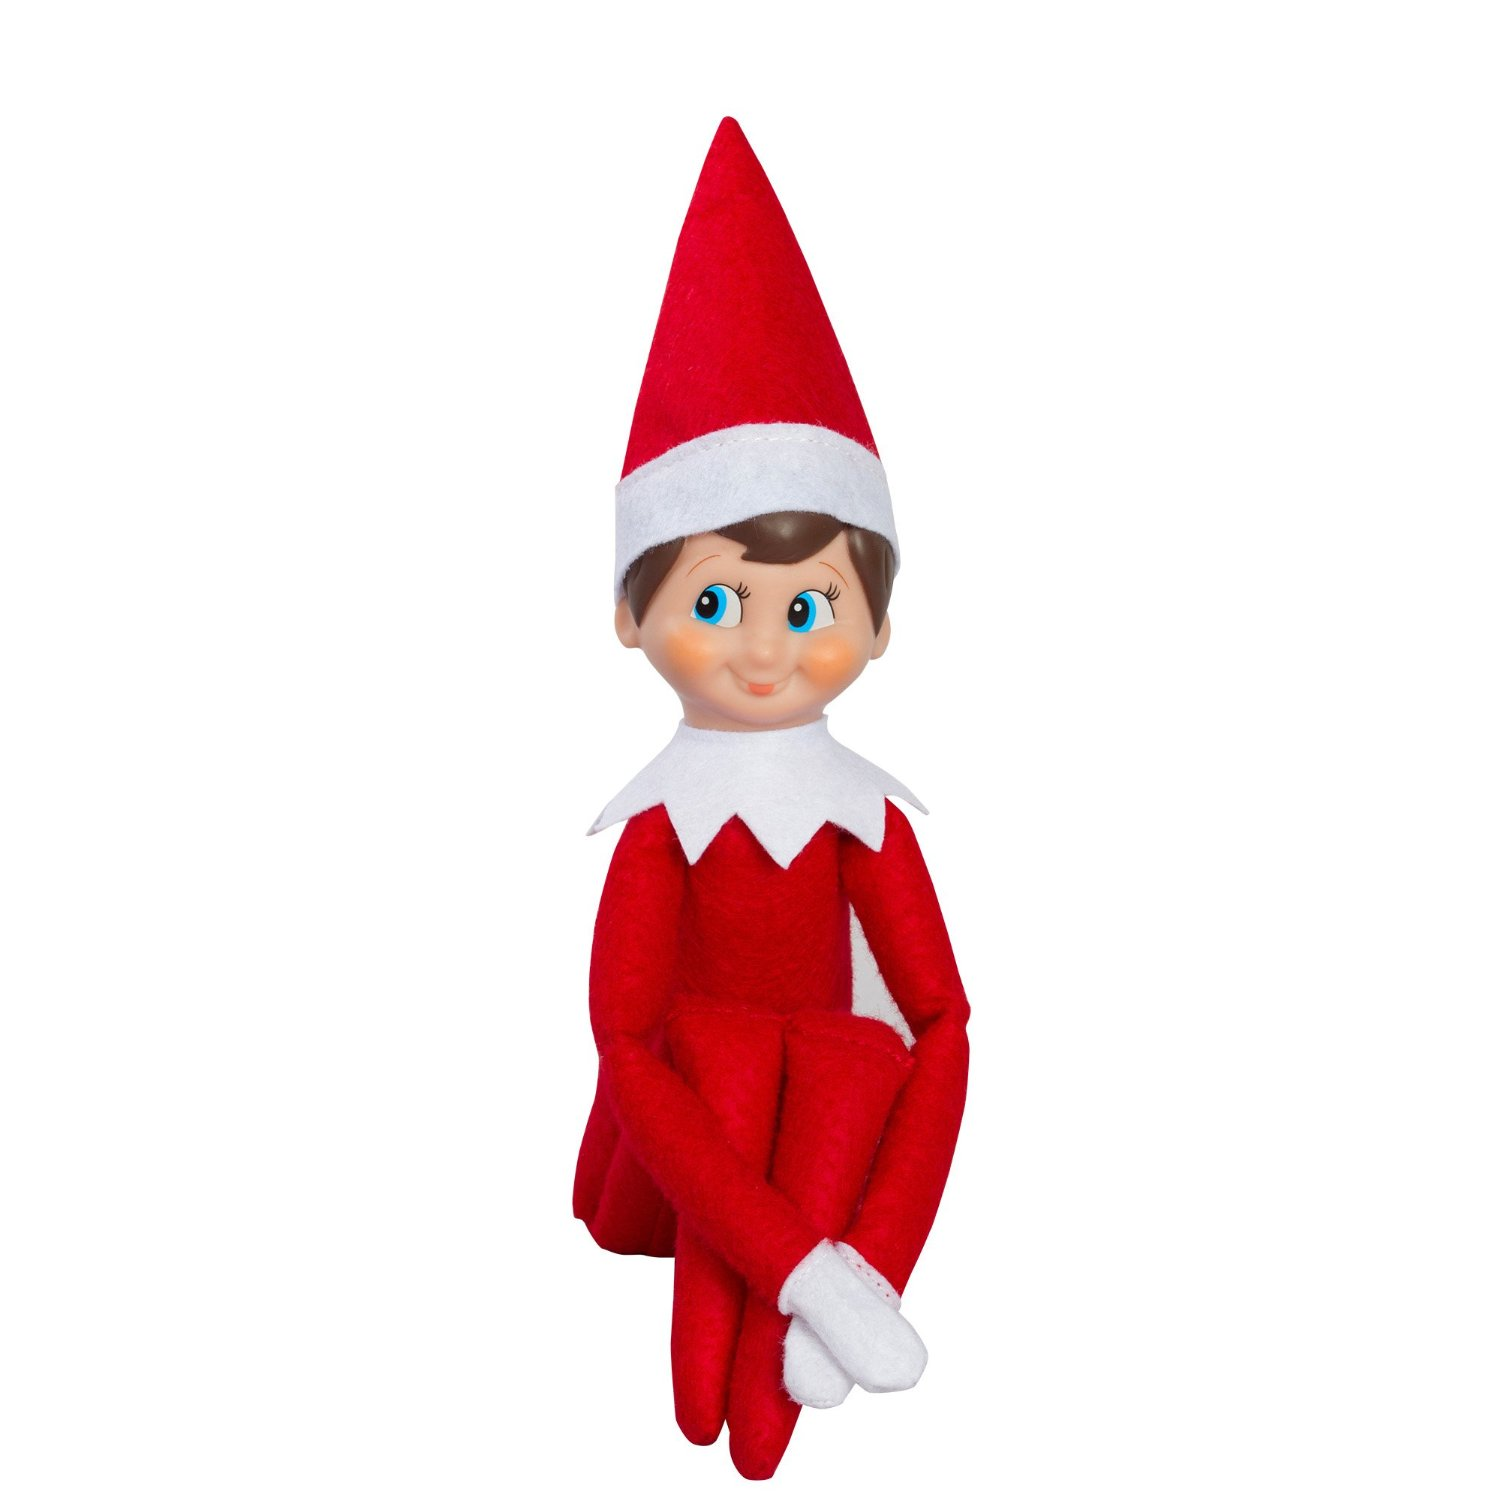 Elf on the Shelf Bundle - The Elf on the Shelf: Christmas Tradition Book with Light Shop Best Sellers · Explore Amazon Devices · Shop Our Huge Selection · Fast Shipping.